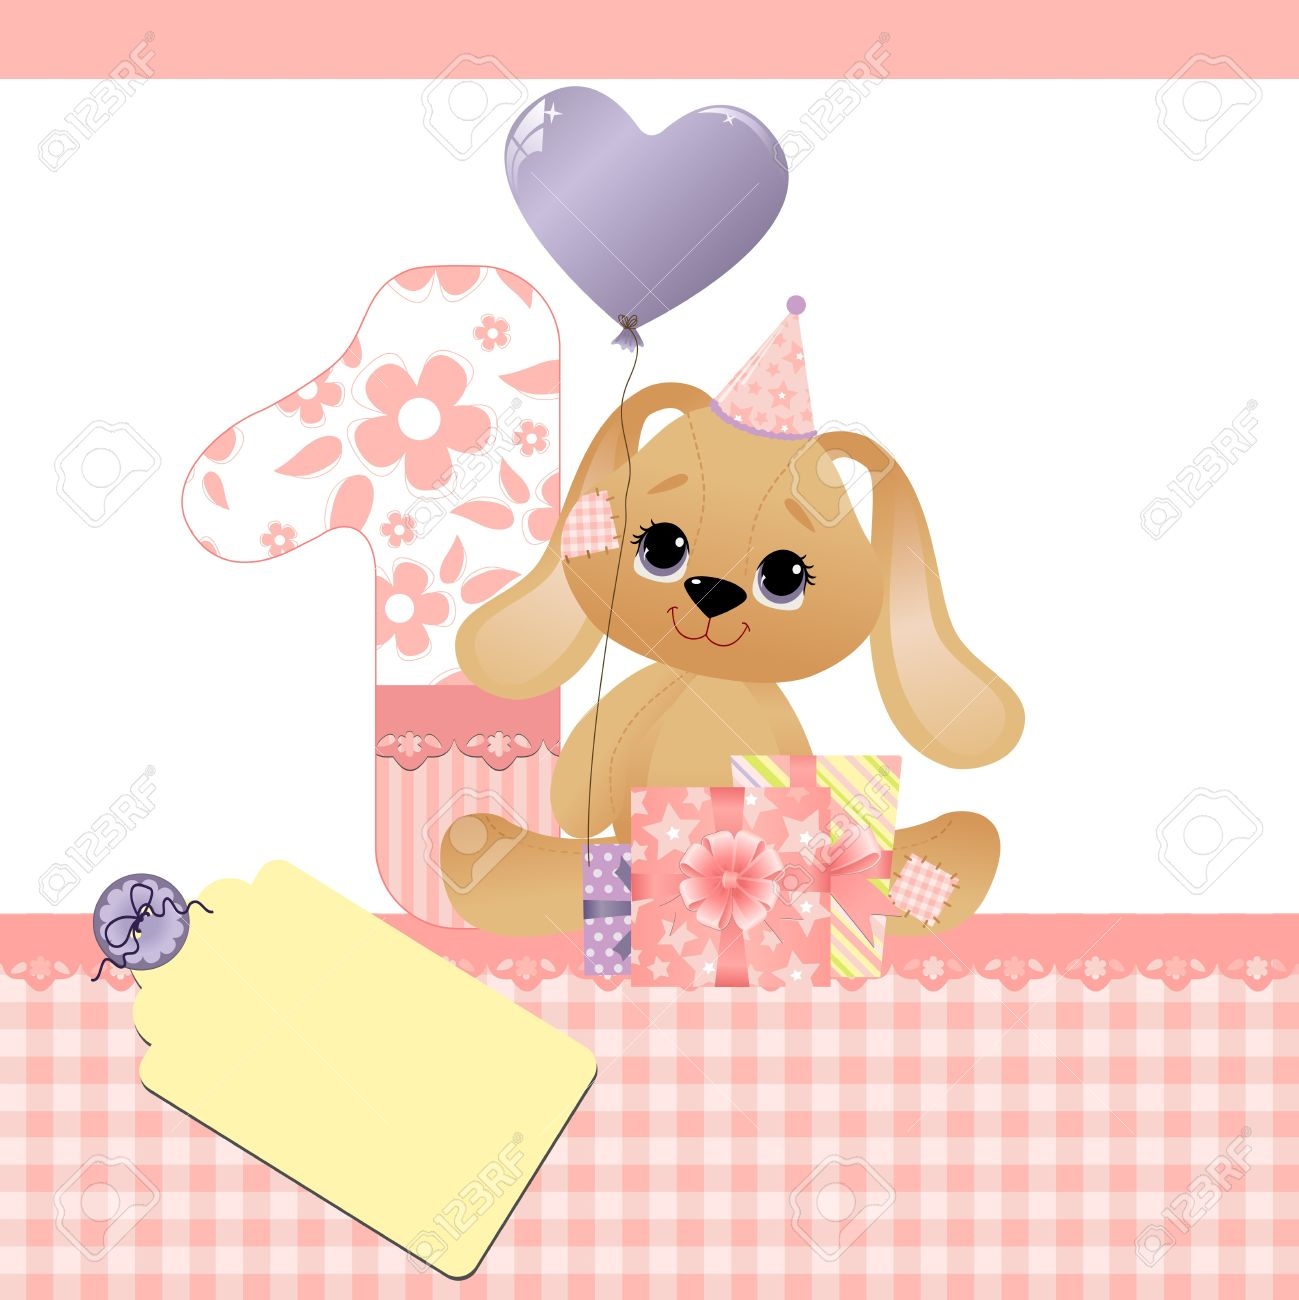 cute template for baby birthday card royalty free cliparts, Birthday card